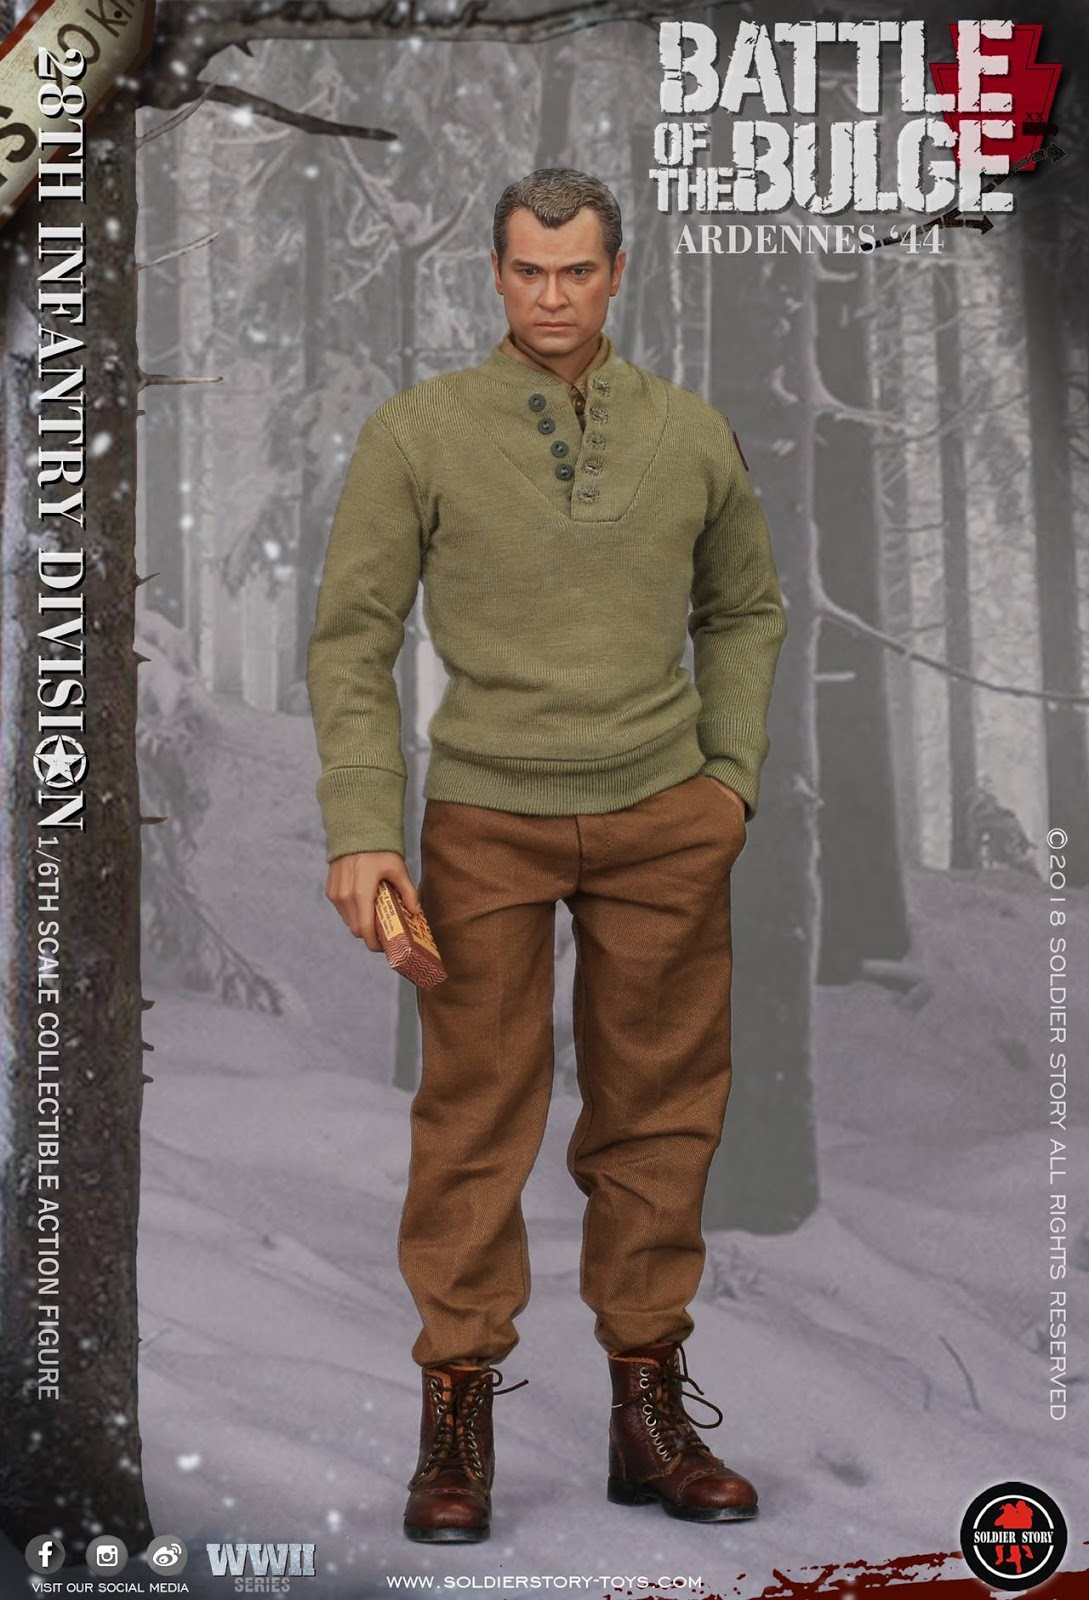 Chocolate Box /& Magazine Battle of Bulge Ardennes 1//6 Scale S Story Figures